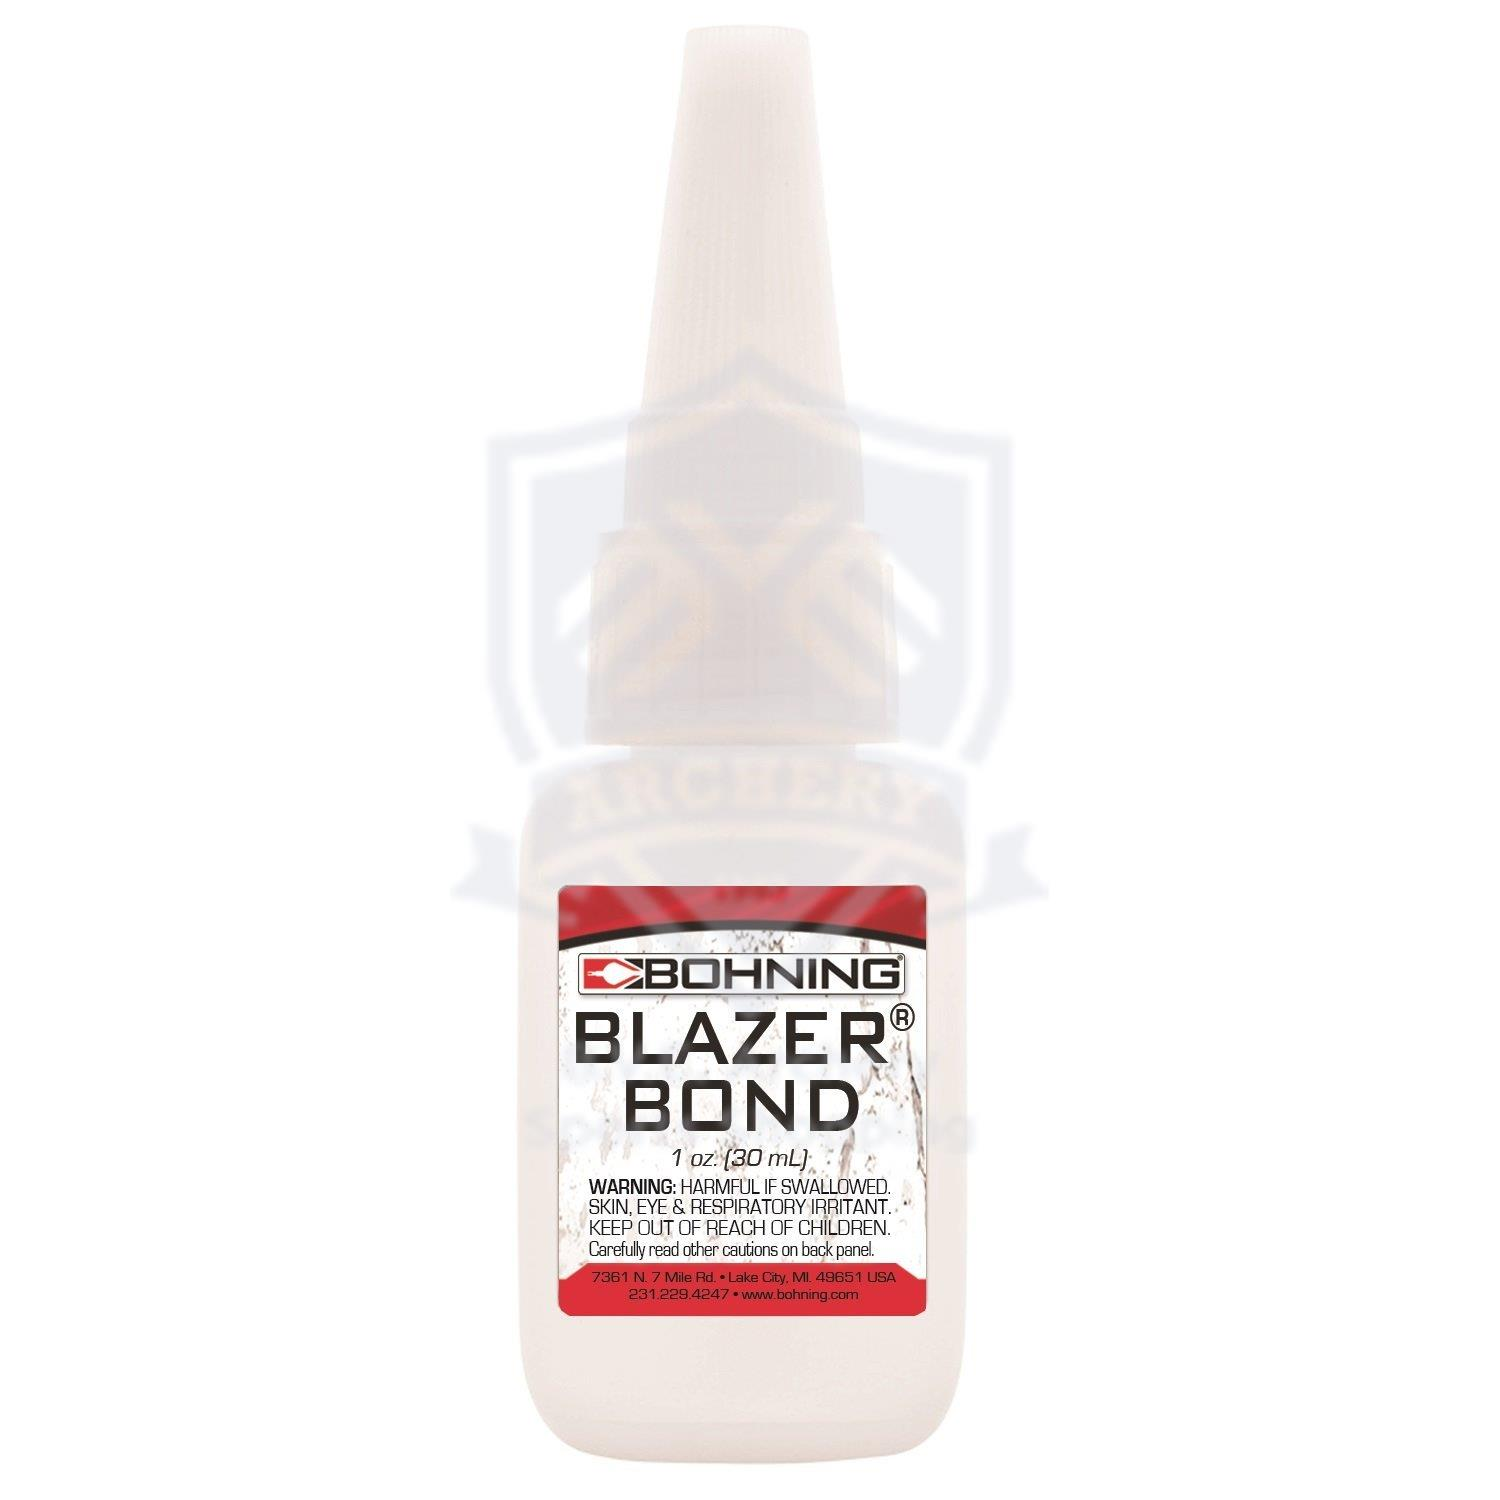 BOHNING BOND BLAZER BOTTLE 1/2 OUNCE